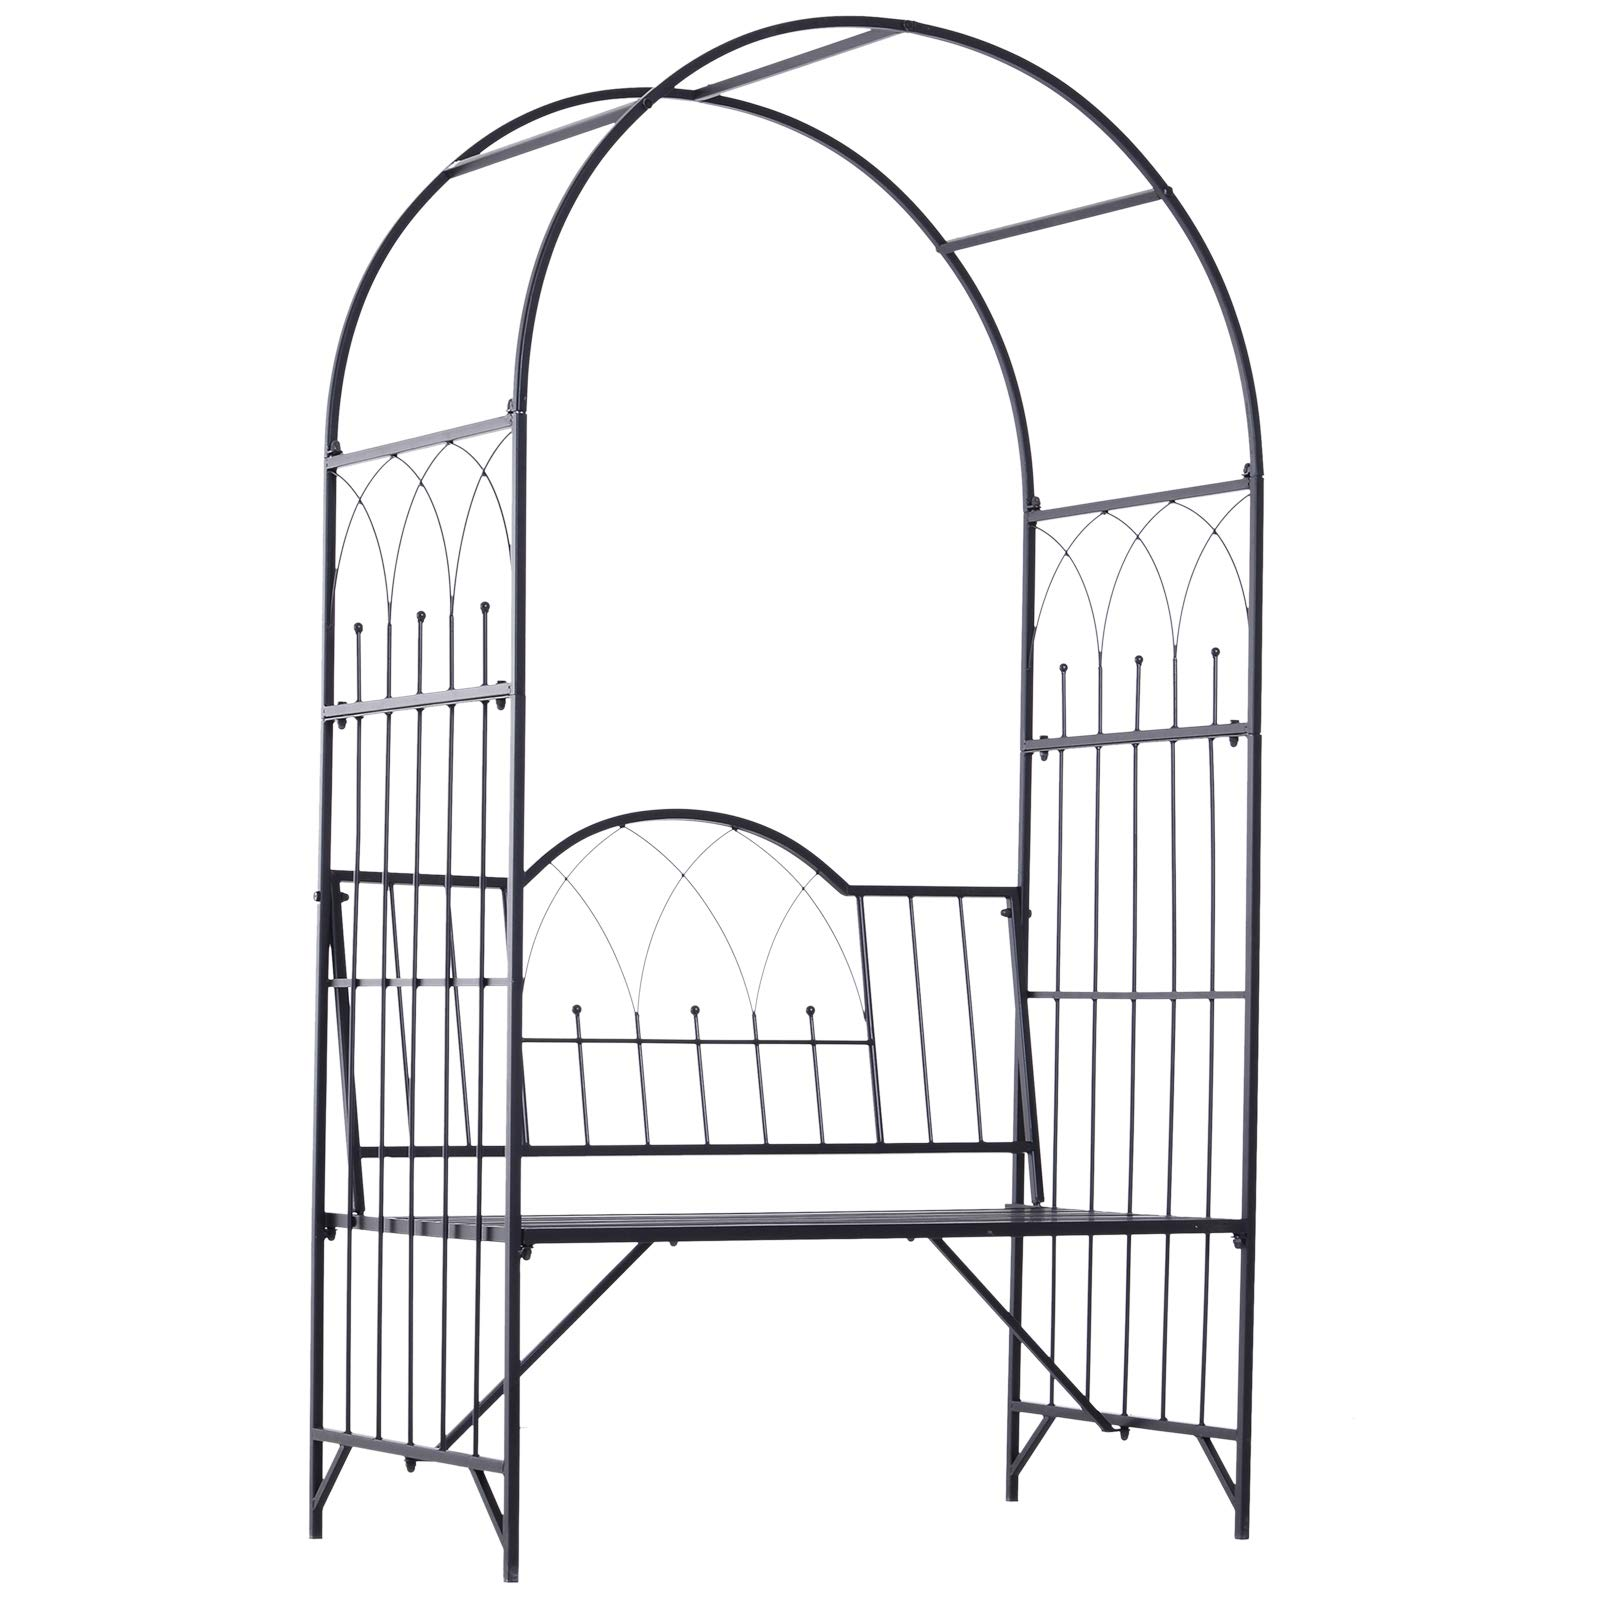 Outsunny Outdoor Garden Arbor Arch Steel Metal with Bench Seat - Black by Outsunny (Image #1)